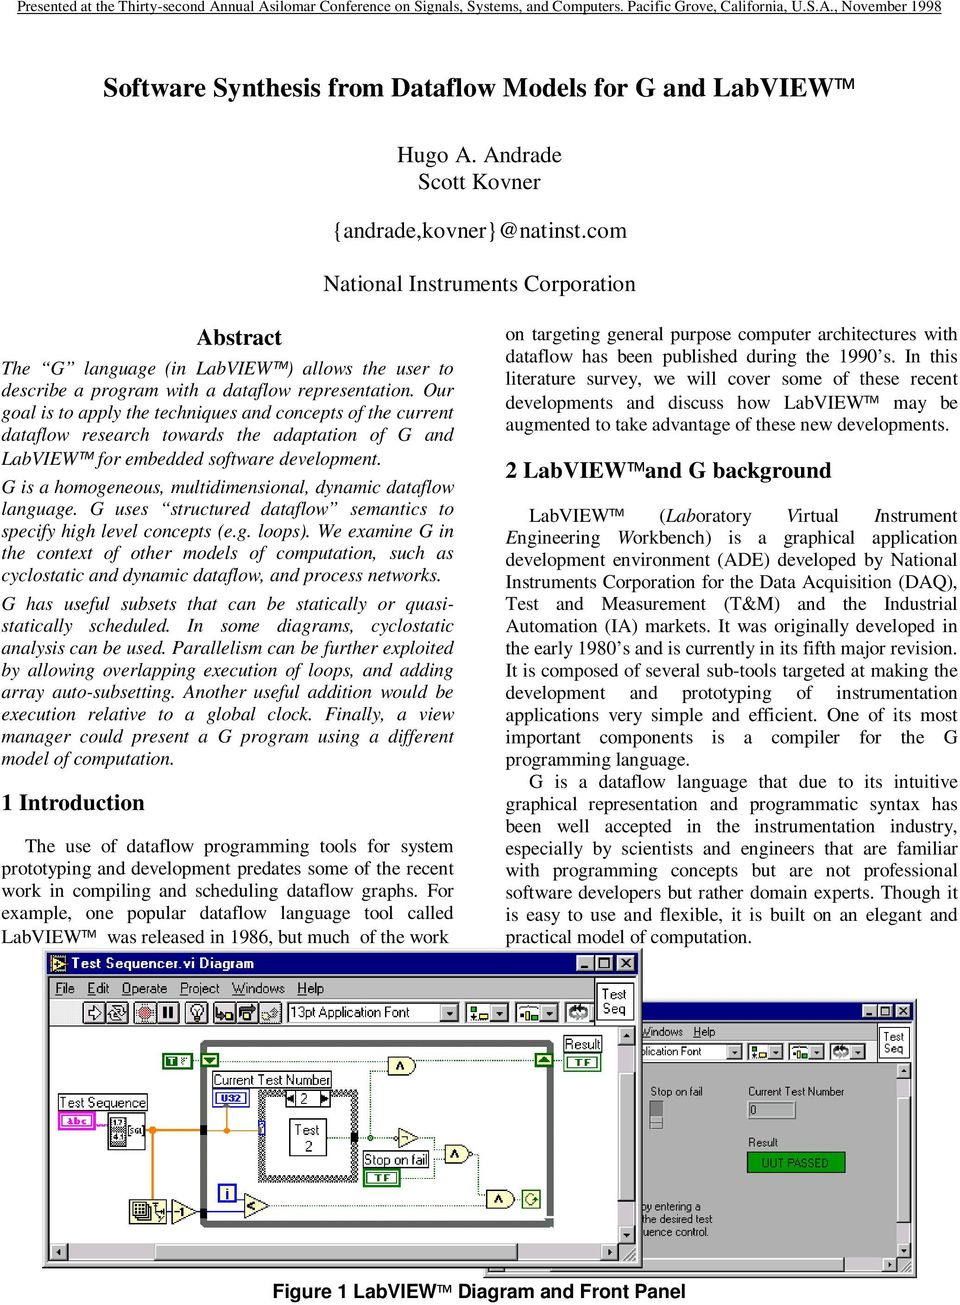 Our goal is to apply the techniques and concepts of the current dataflow research towards the adaptation of G and LabVIEW for embedded software development.